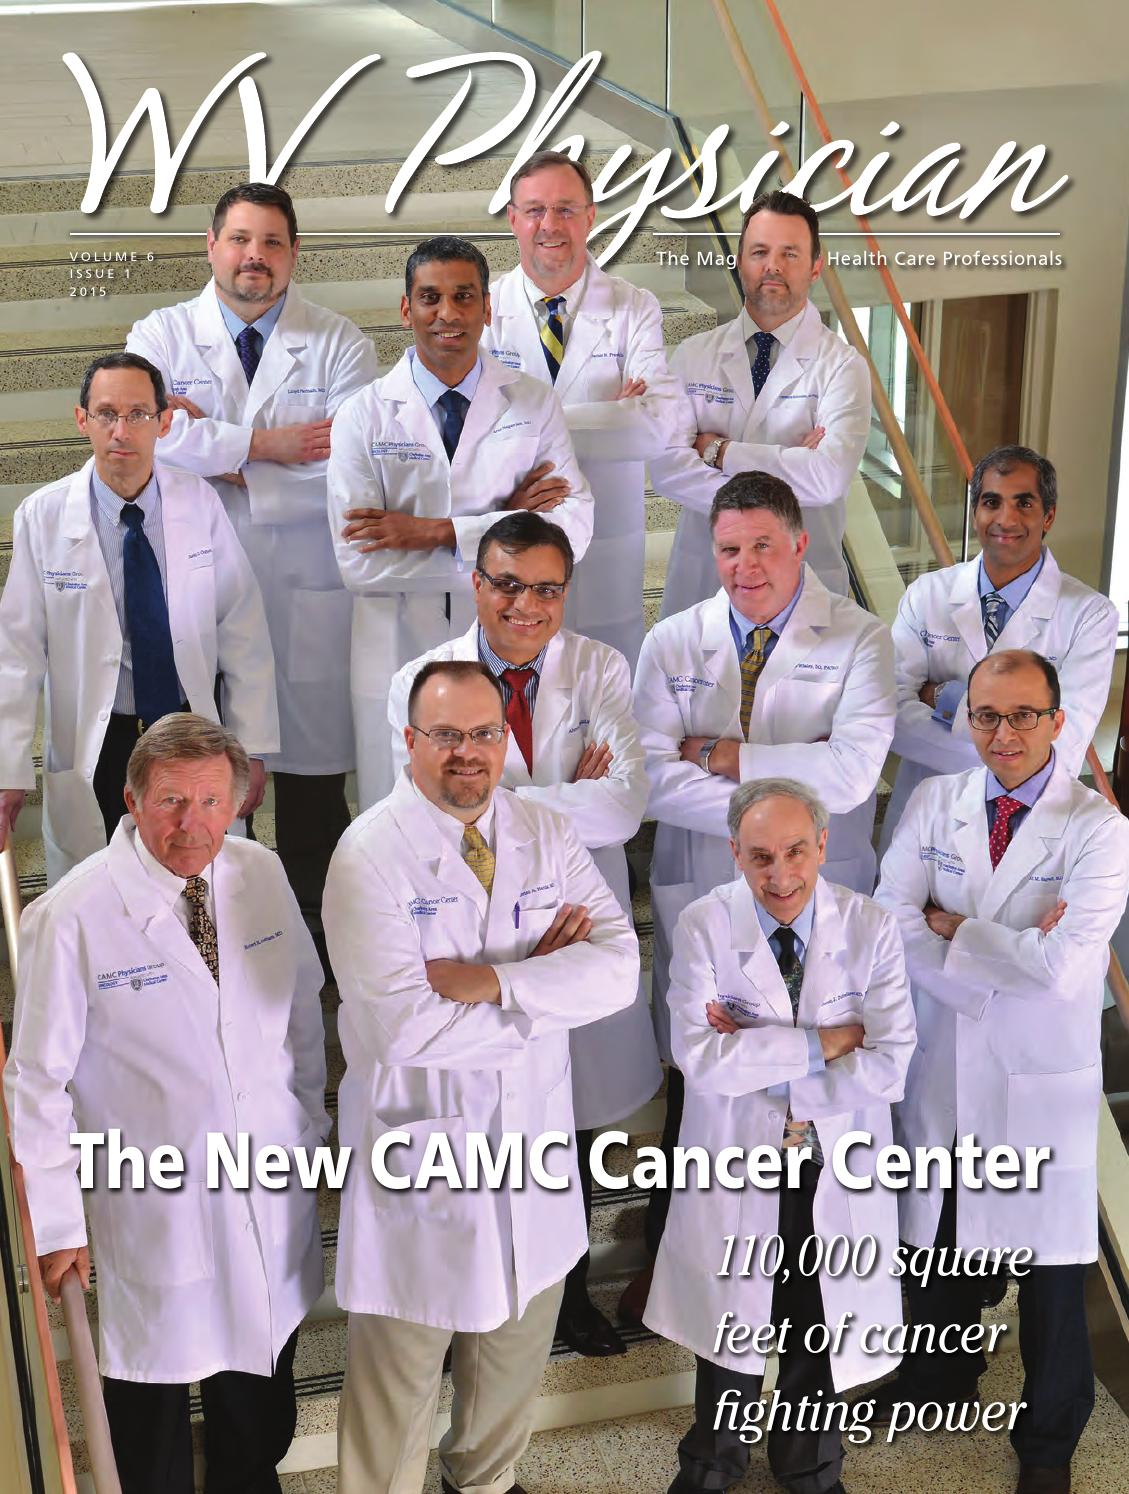 Wv Physician Magazine Volume 6 Issue 1 By P J Hutton